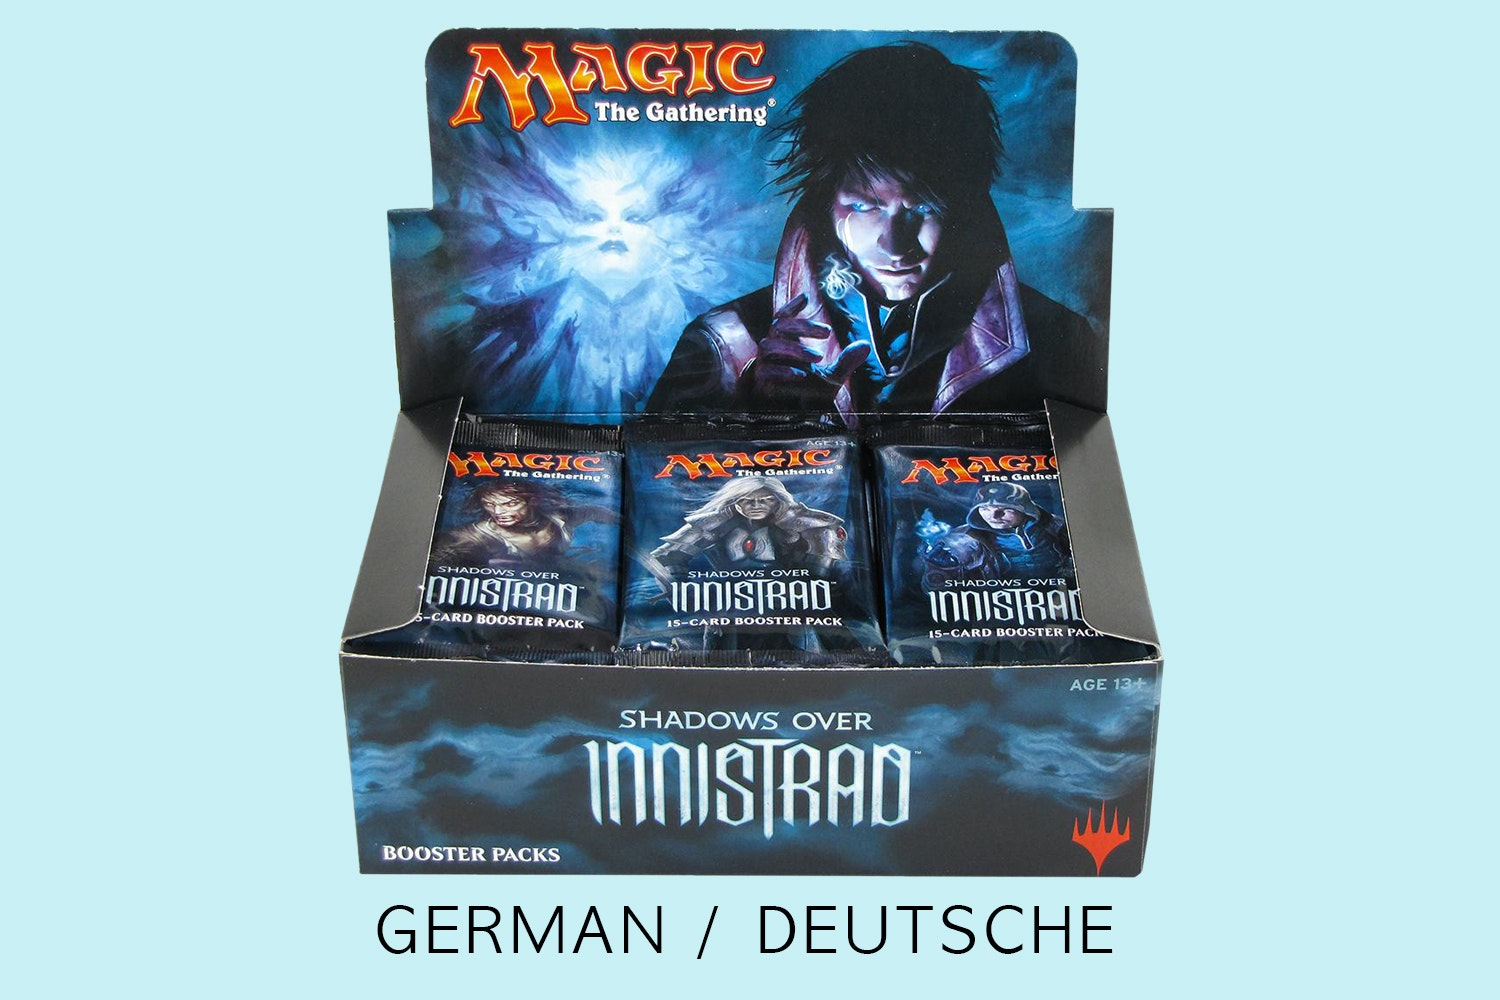 Shadows Over Innistrad: German